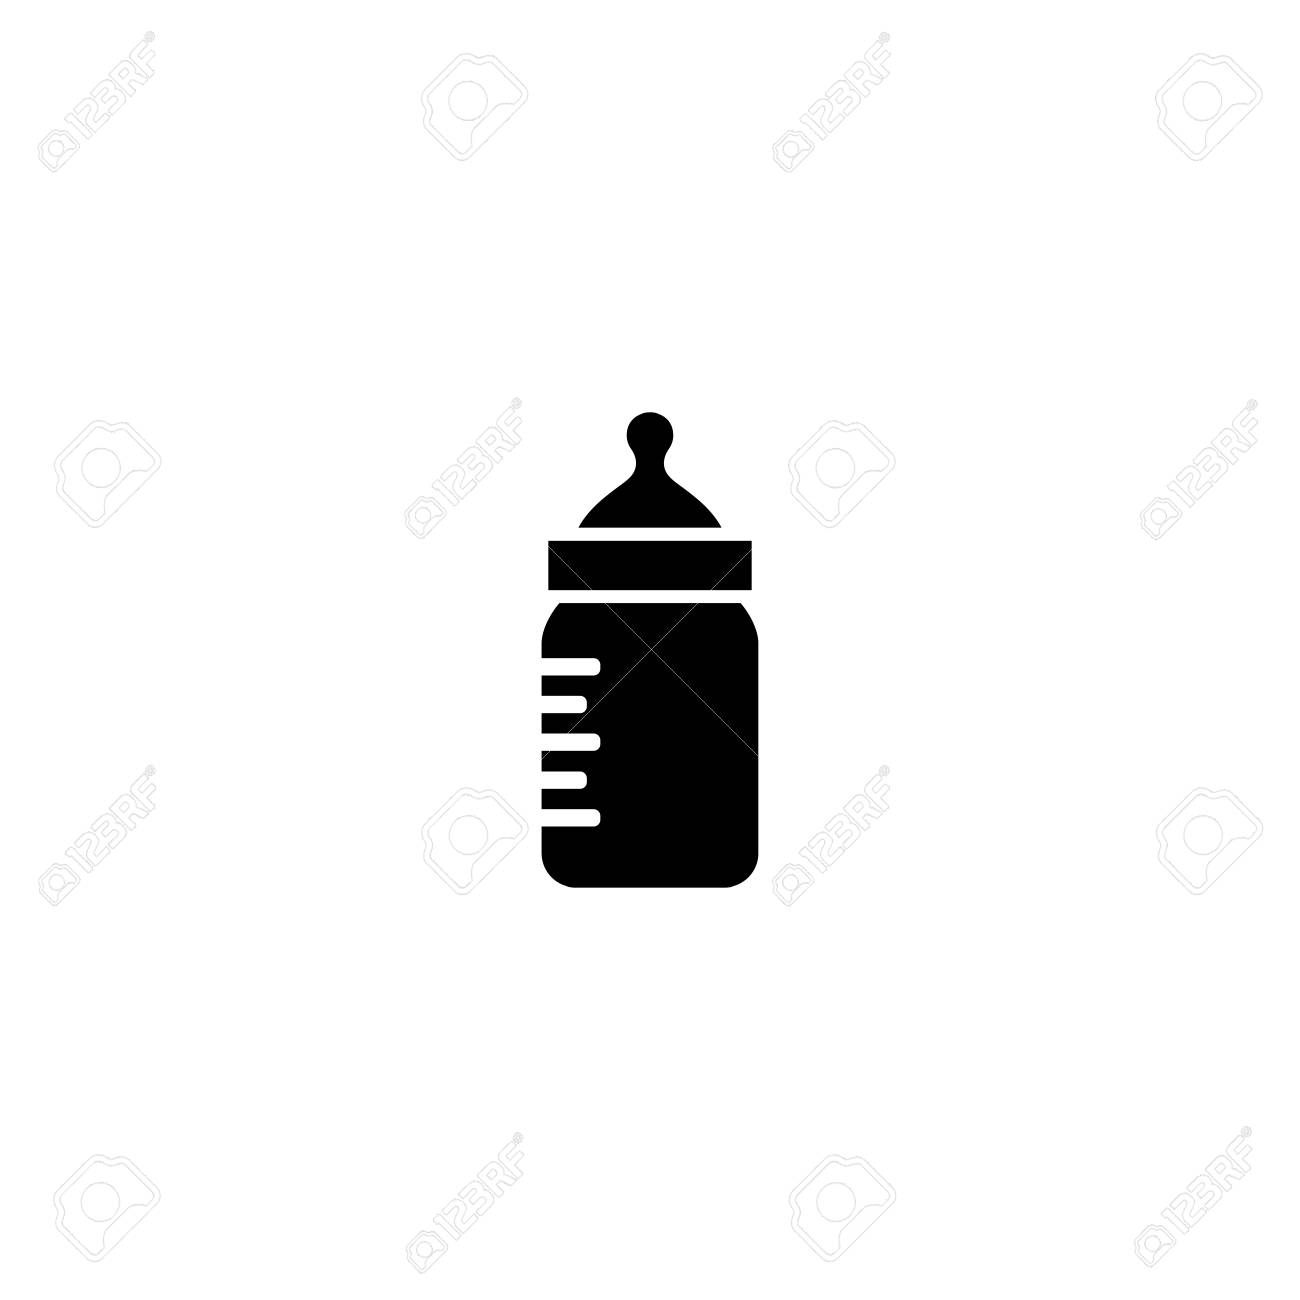 Baby Bottle Silhouette Icon On White Background  Royalty Free